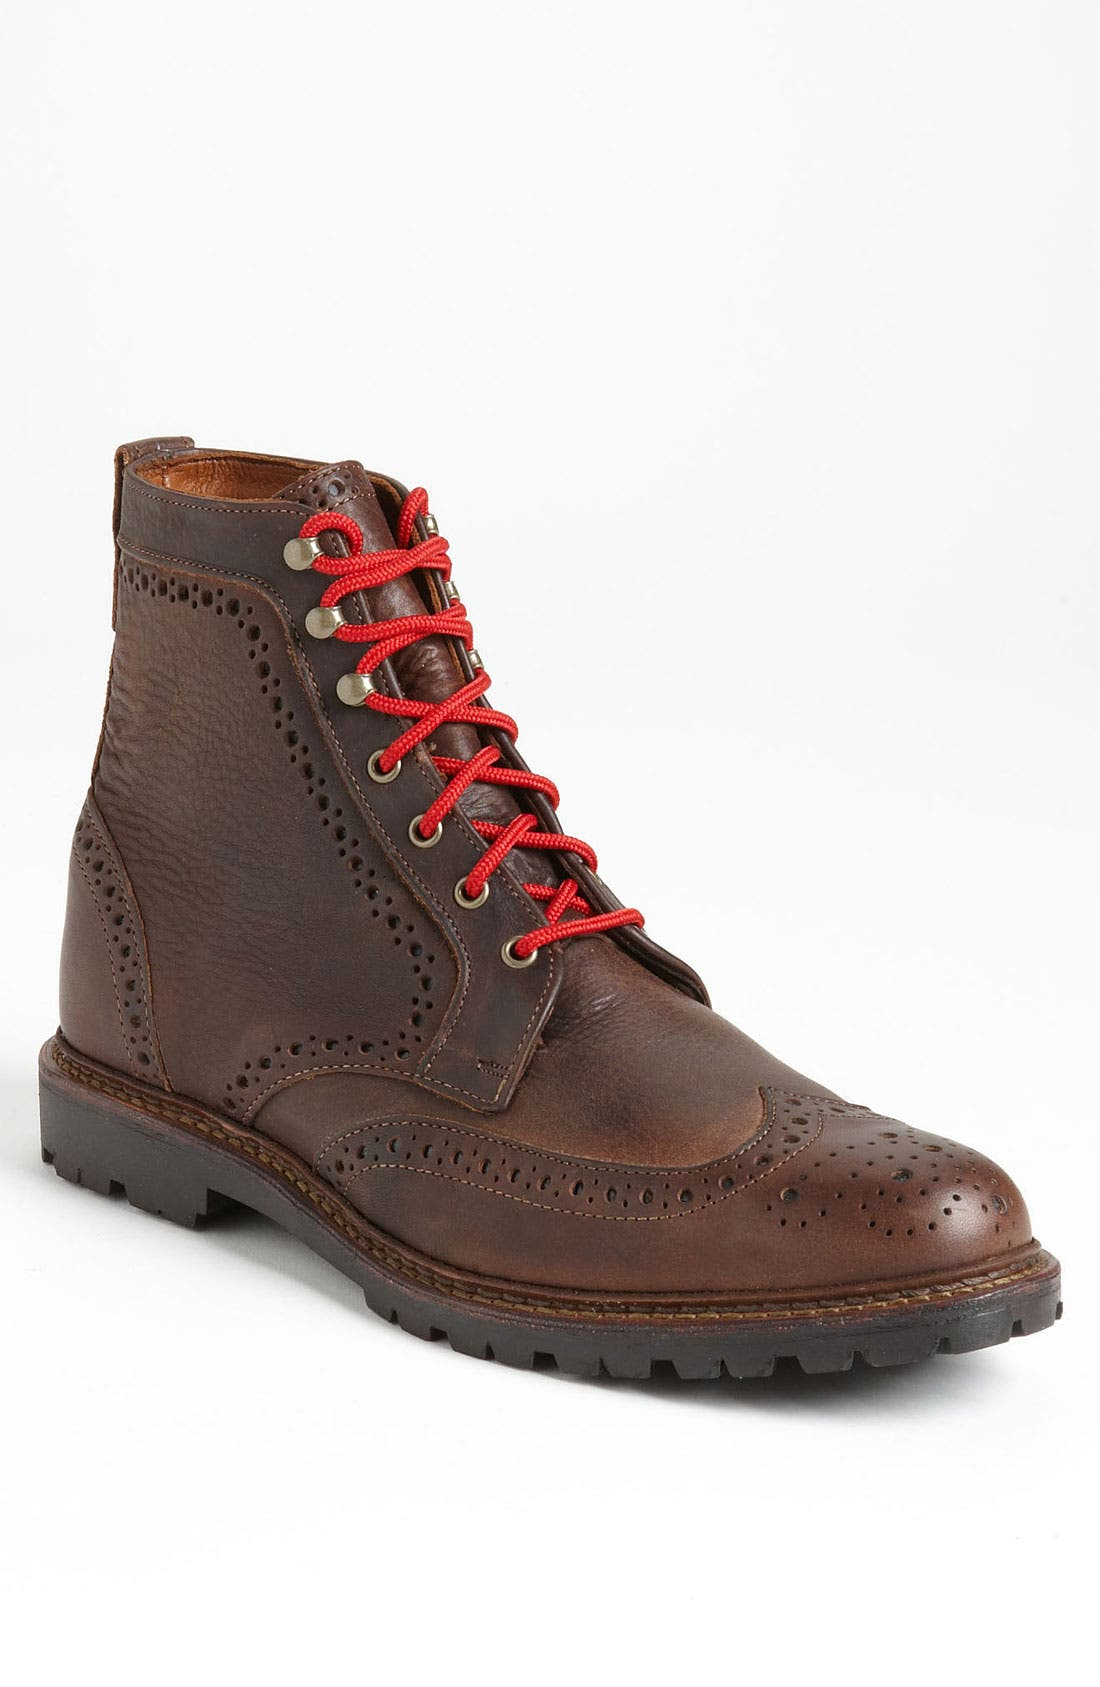 Alternate Image 1 Selected - Allen Edmonds 'Long Branch' Wingtip Boot (Men) (Online Only)